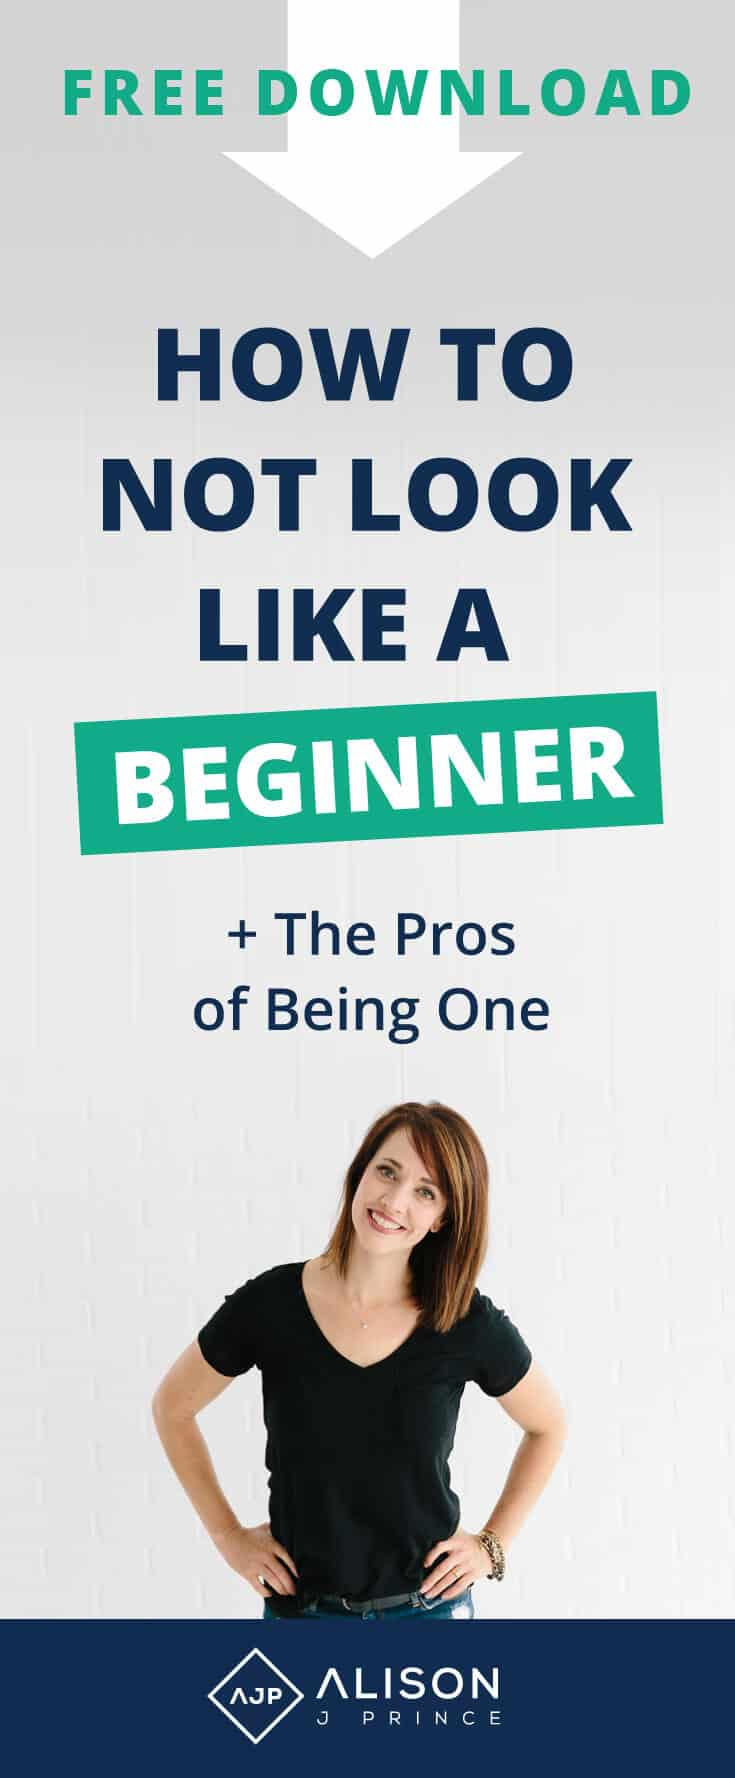 Ecommerce and Online Businesses: The Pros of Being a Beginner and How Not to Look Like One - Alison Prince